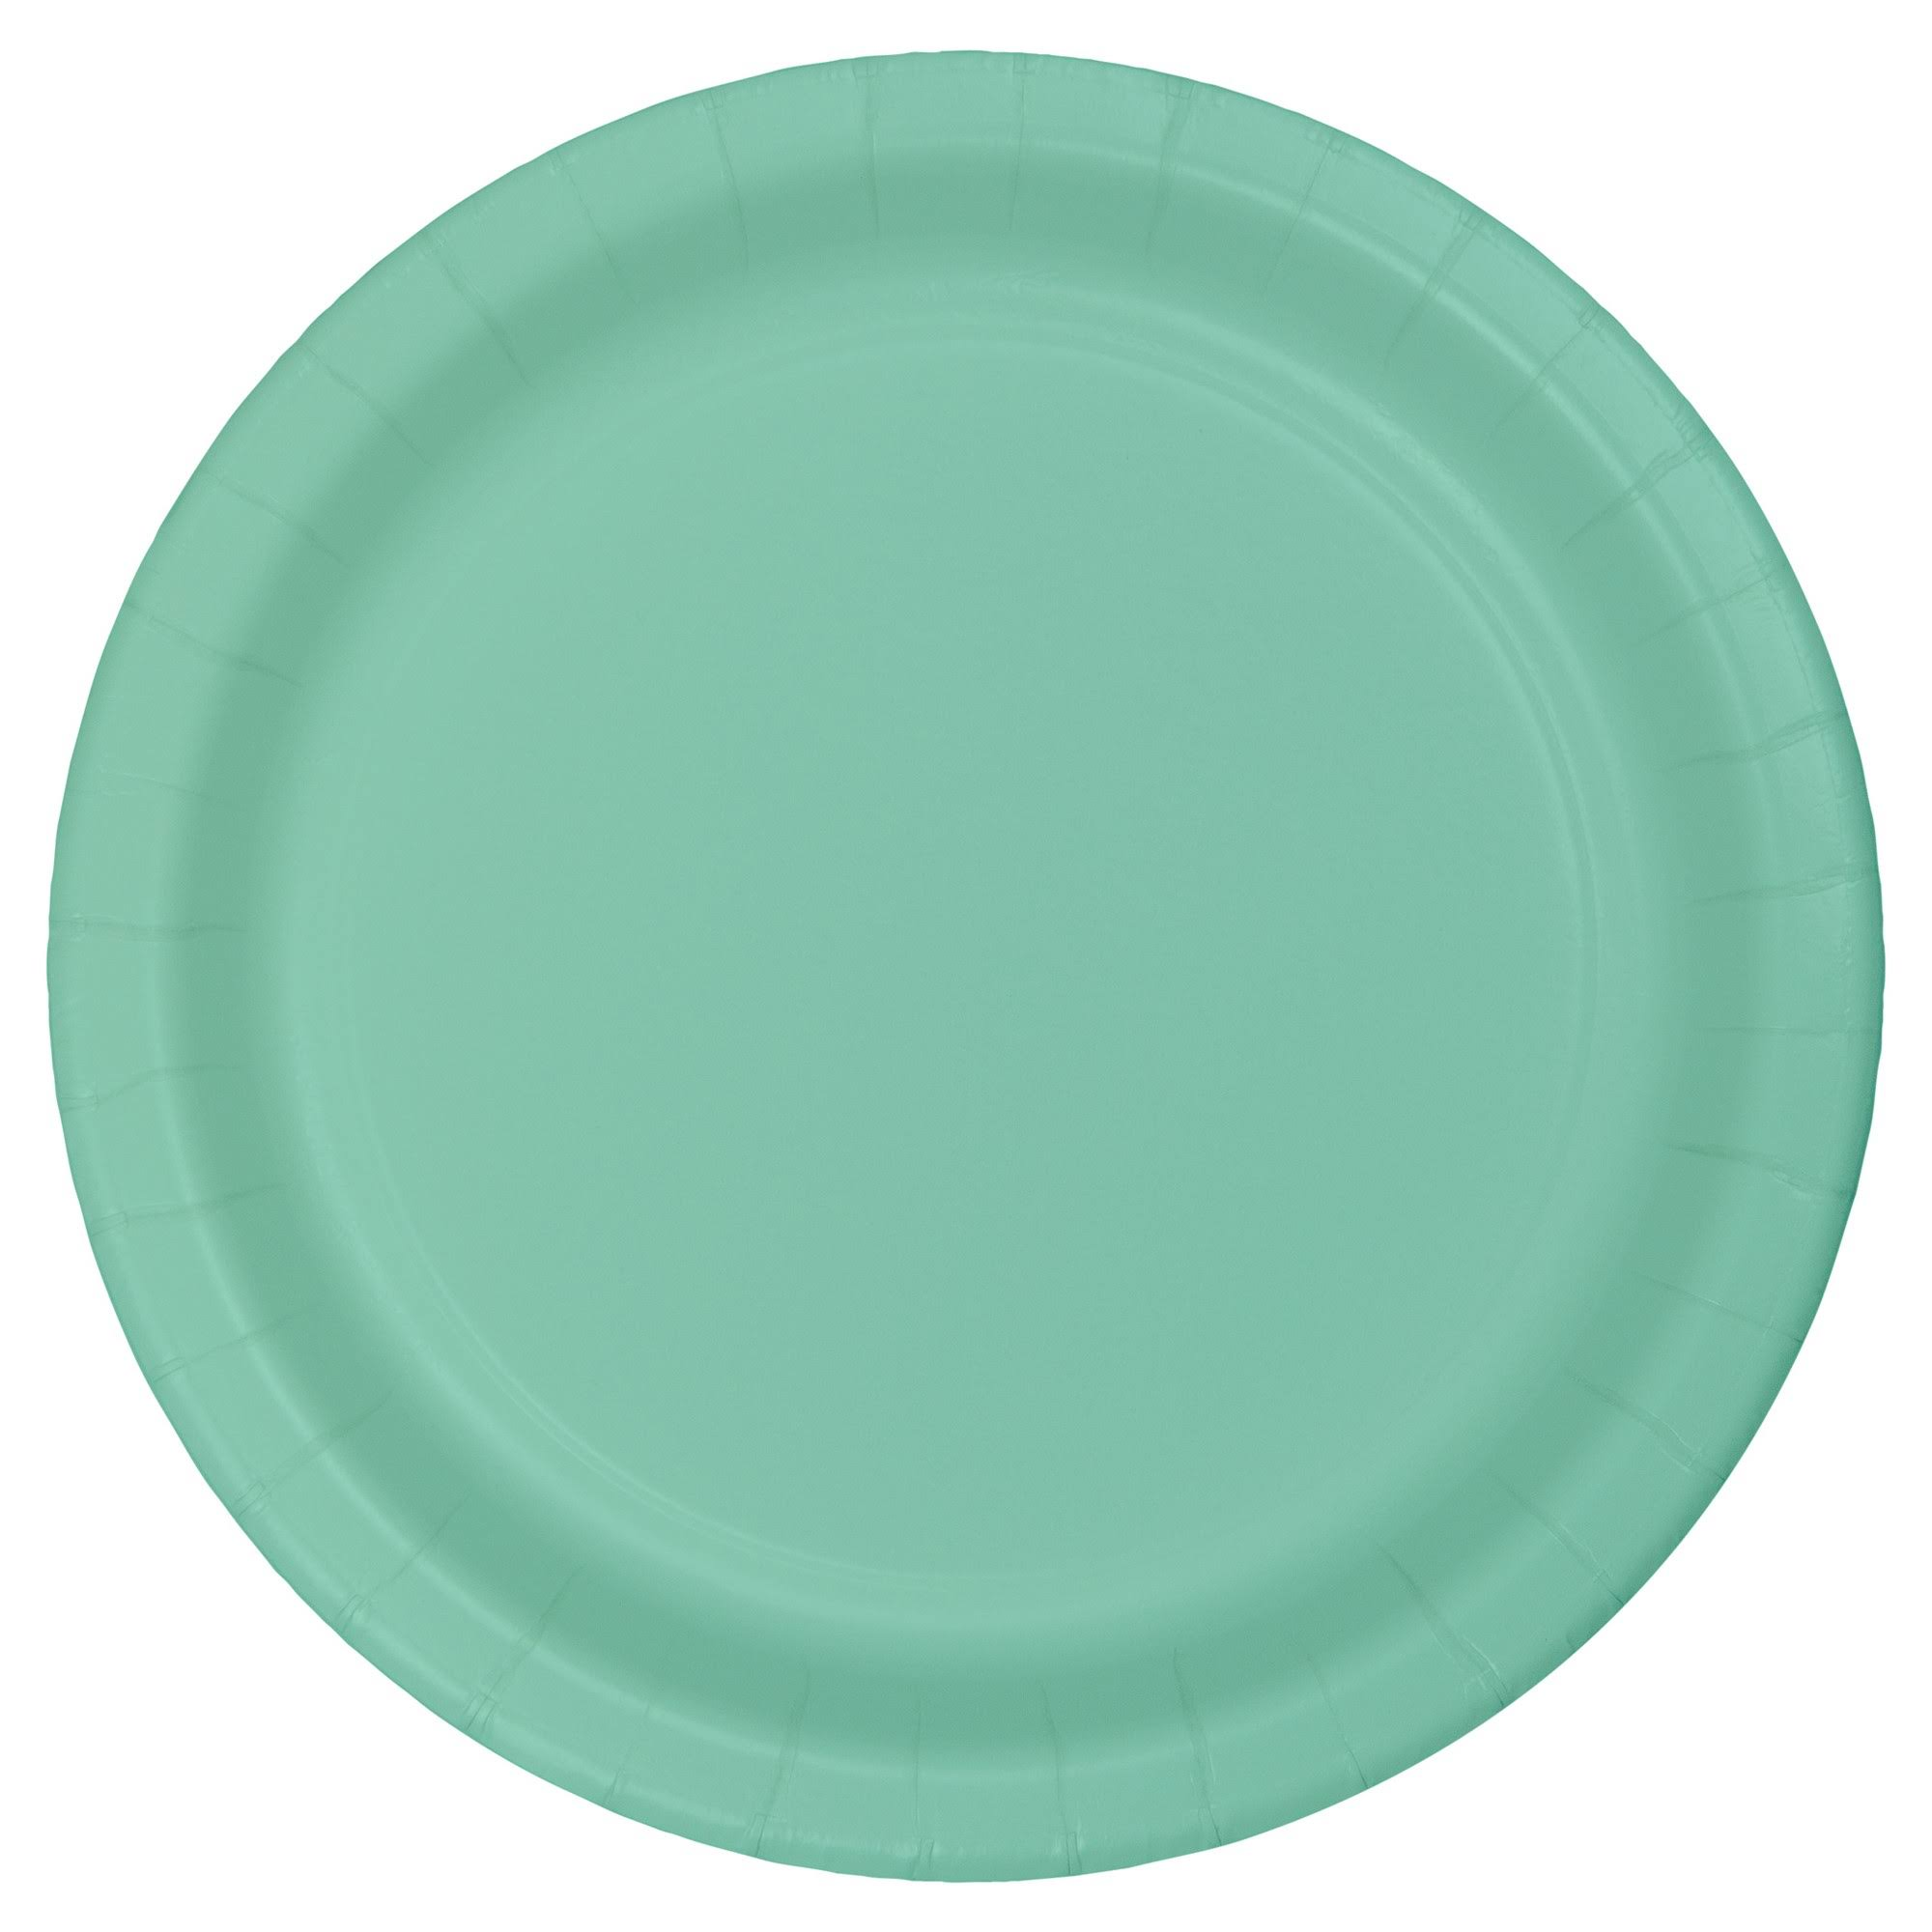 "Creative Converting 318888 Paper Dinner Plate - 9"", Fresh Mint, 24ct"